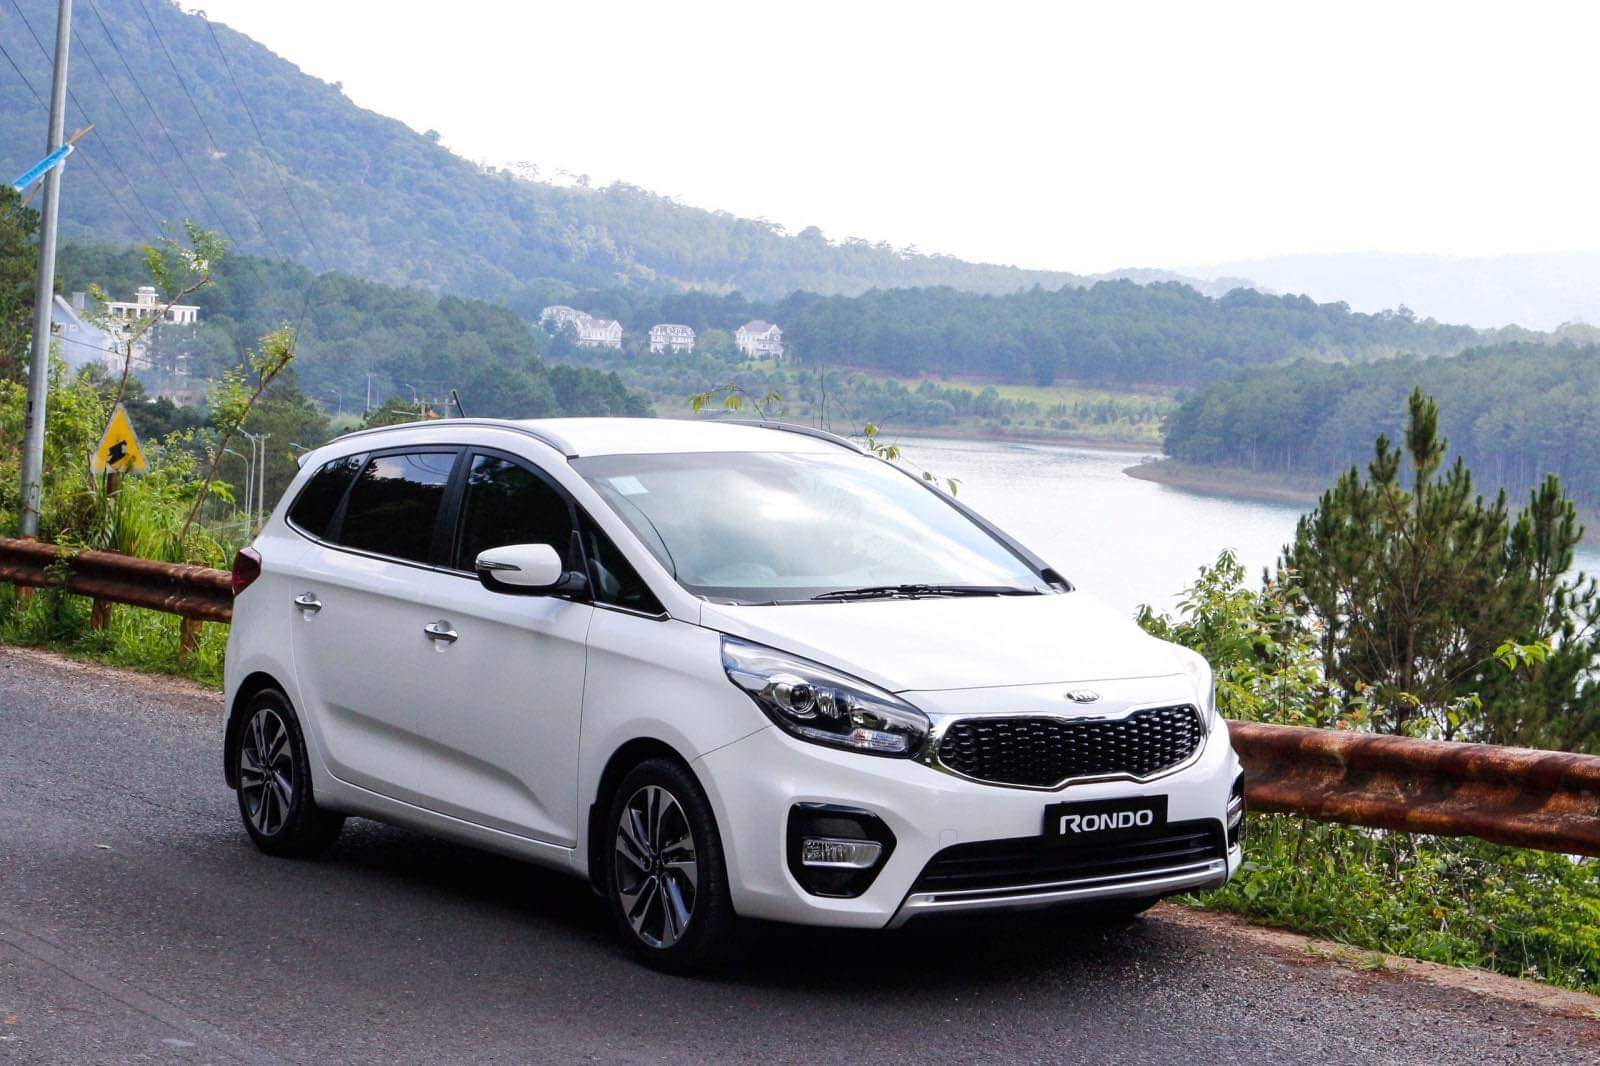 Sai Gon to Can Tho by private car